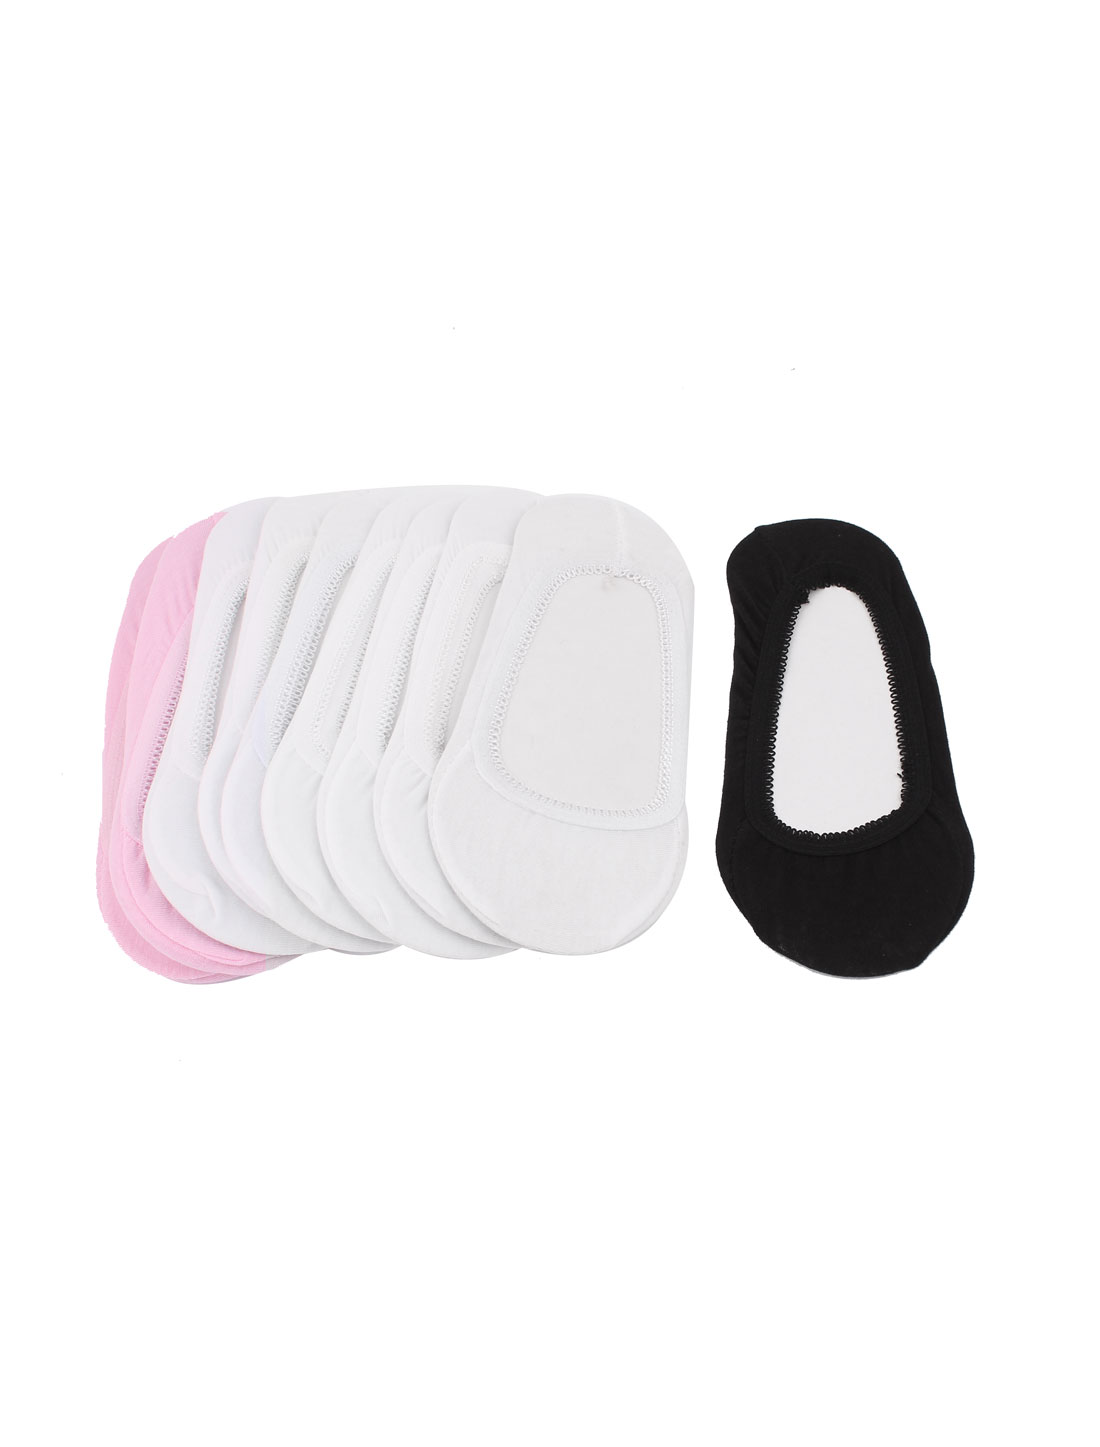 10 Pair Black Pink White Soft Cotton Blends Stretchy Slipper Heels Footsie Boat Socks for Ladies